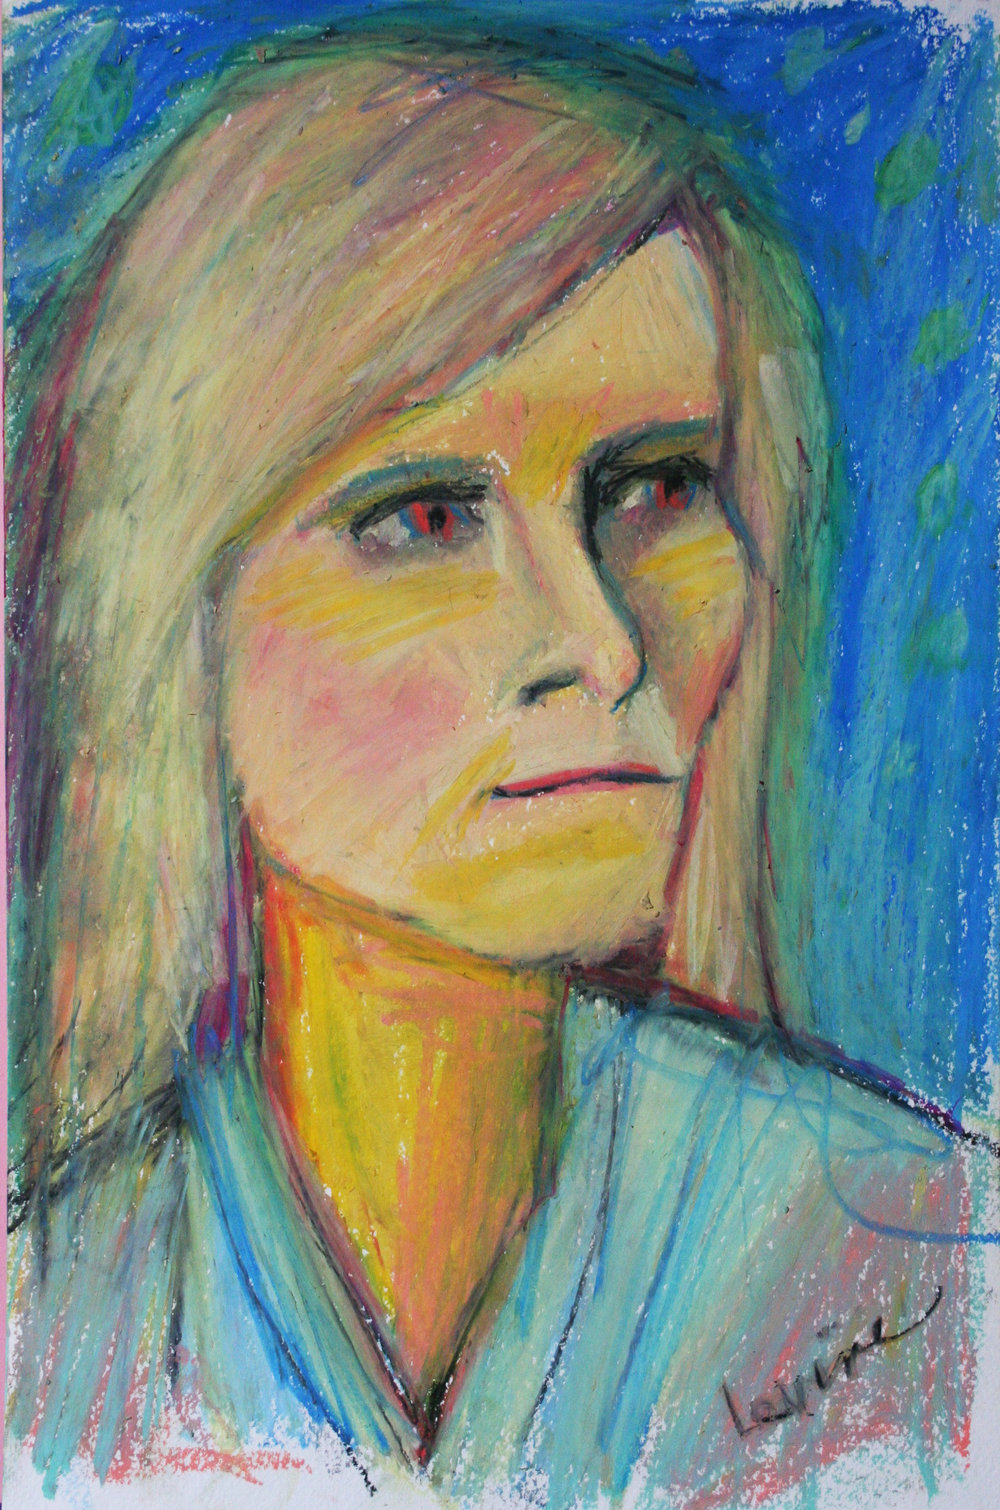 Phyllis Peterson Levine did this 3-hour oil pastel drawing.